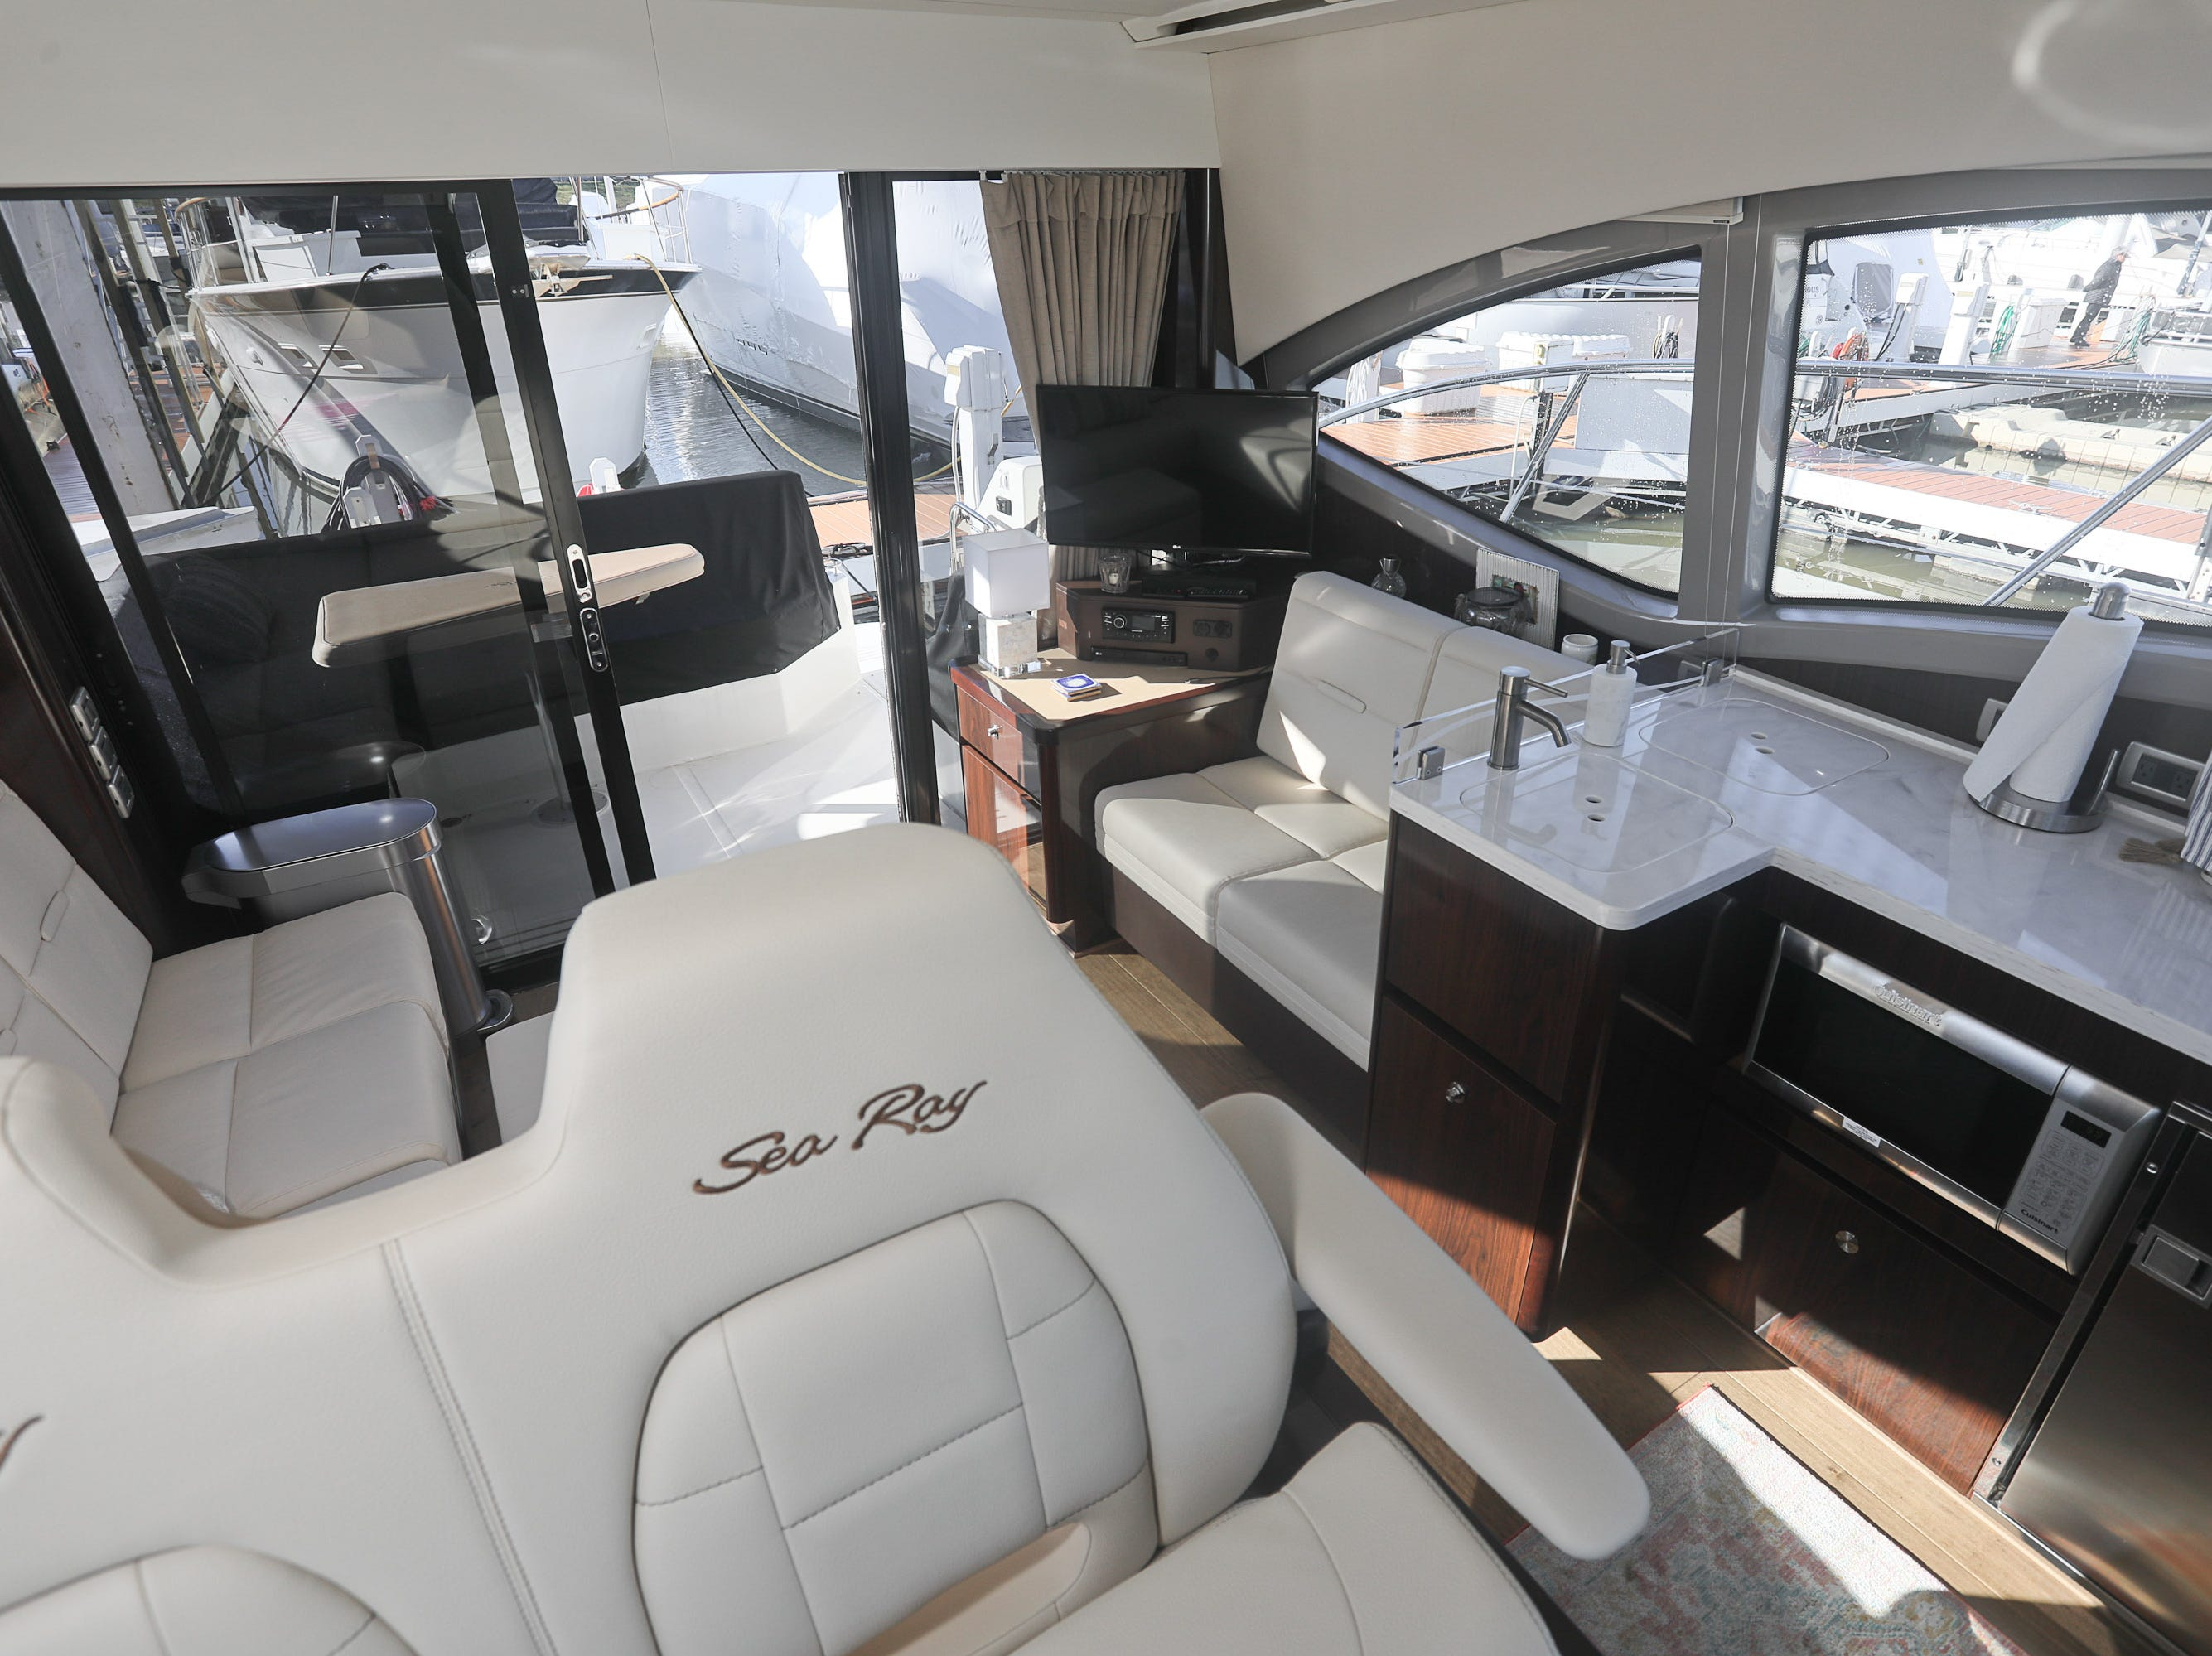 The saloon and galley of a 2017 Sea Ray 400 Sundancer at the Captain's Quarters marina in Louisville, KY. Dec. 17, 2018